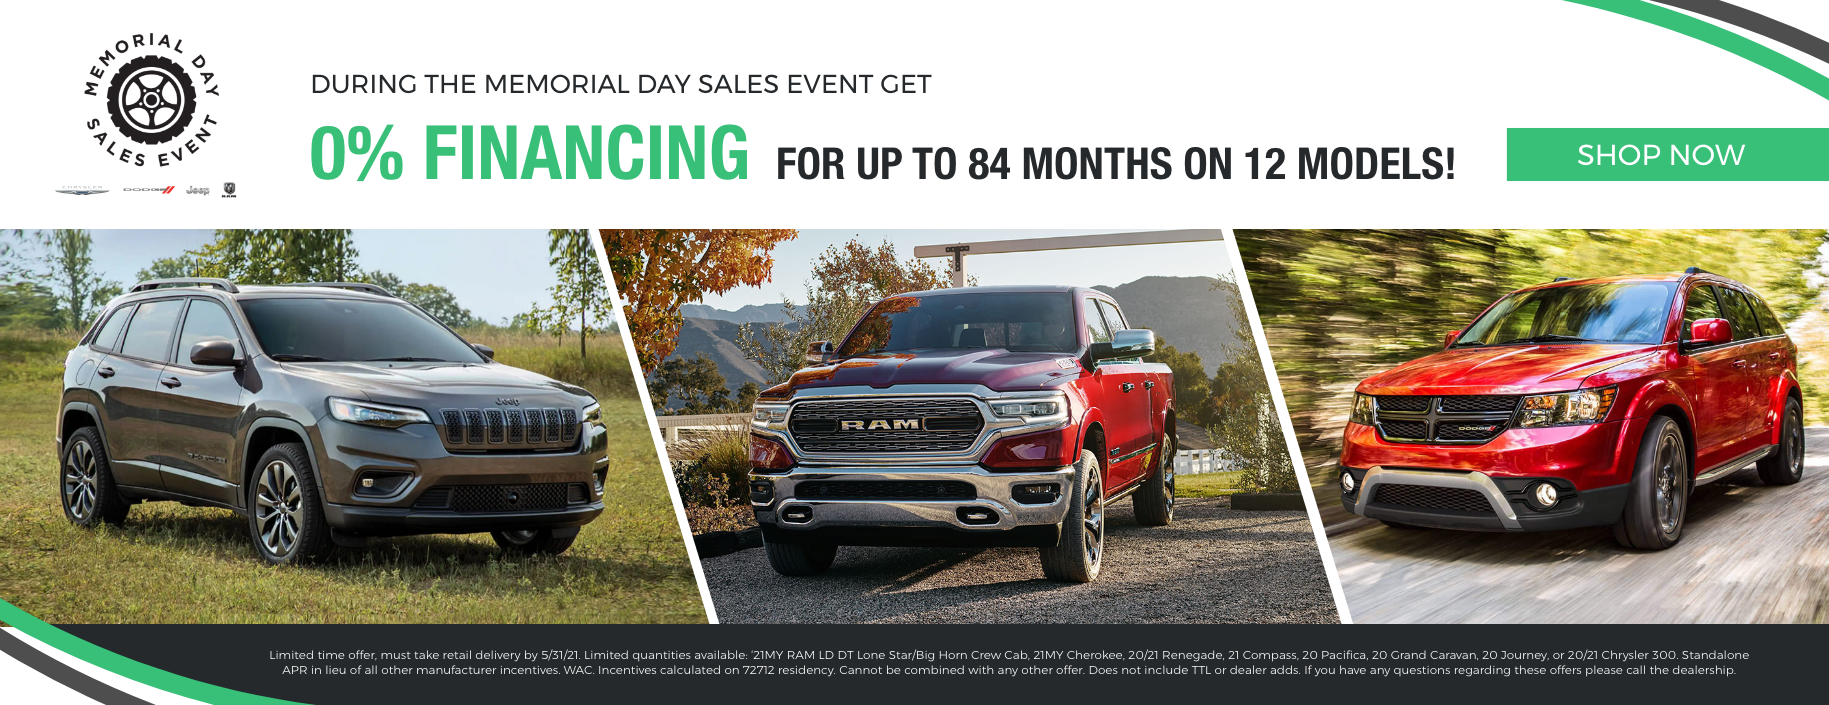 During the Memorial Day Sales Event get 0% financing up to 84 months on 12 models!